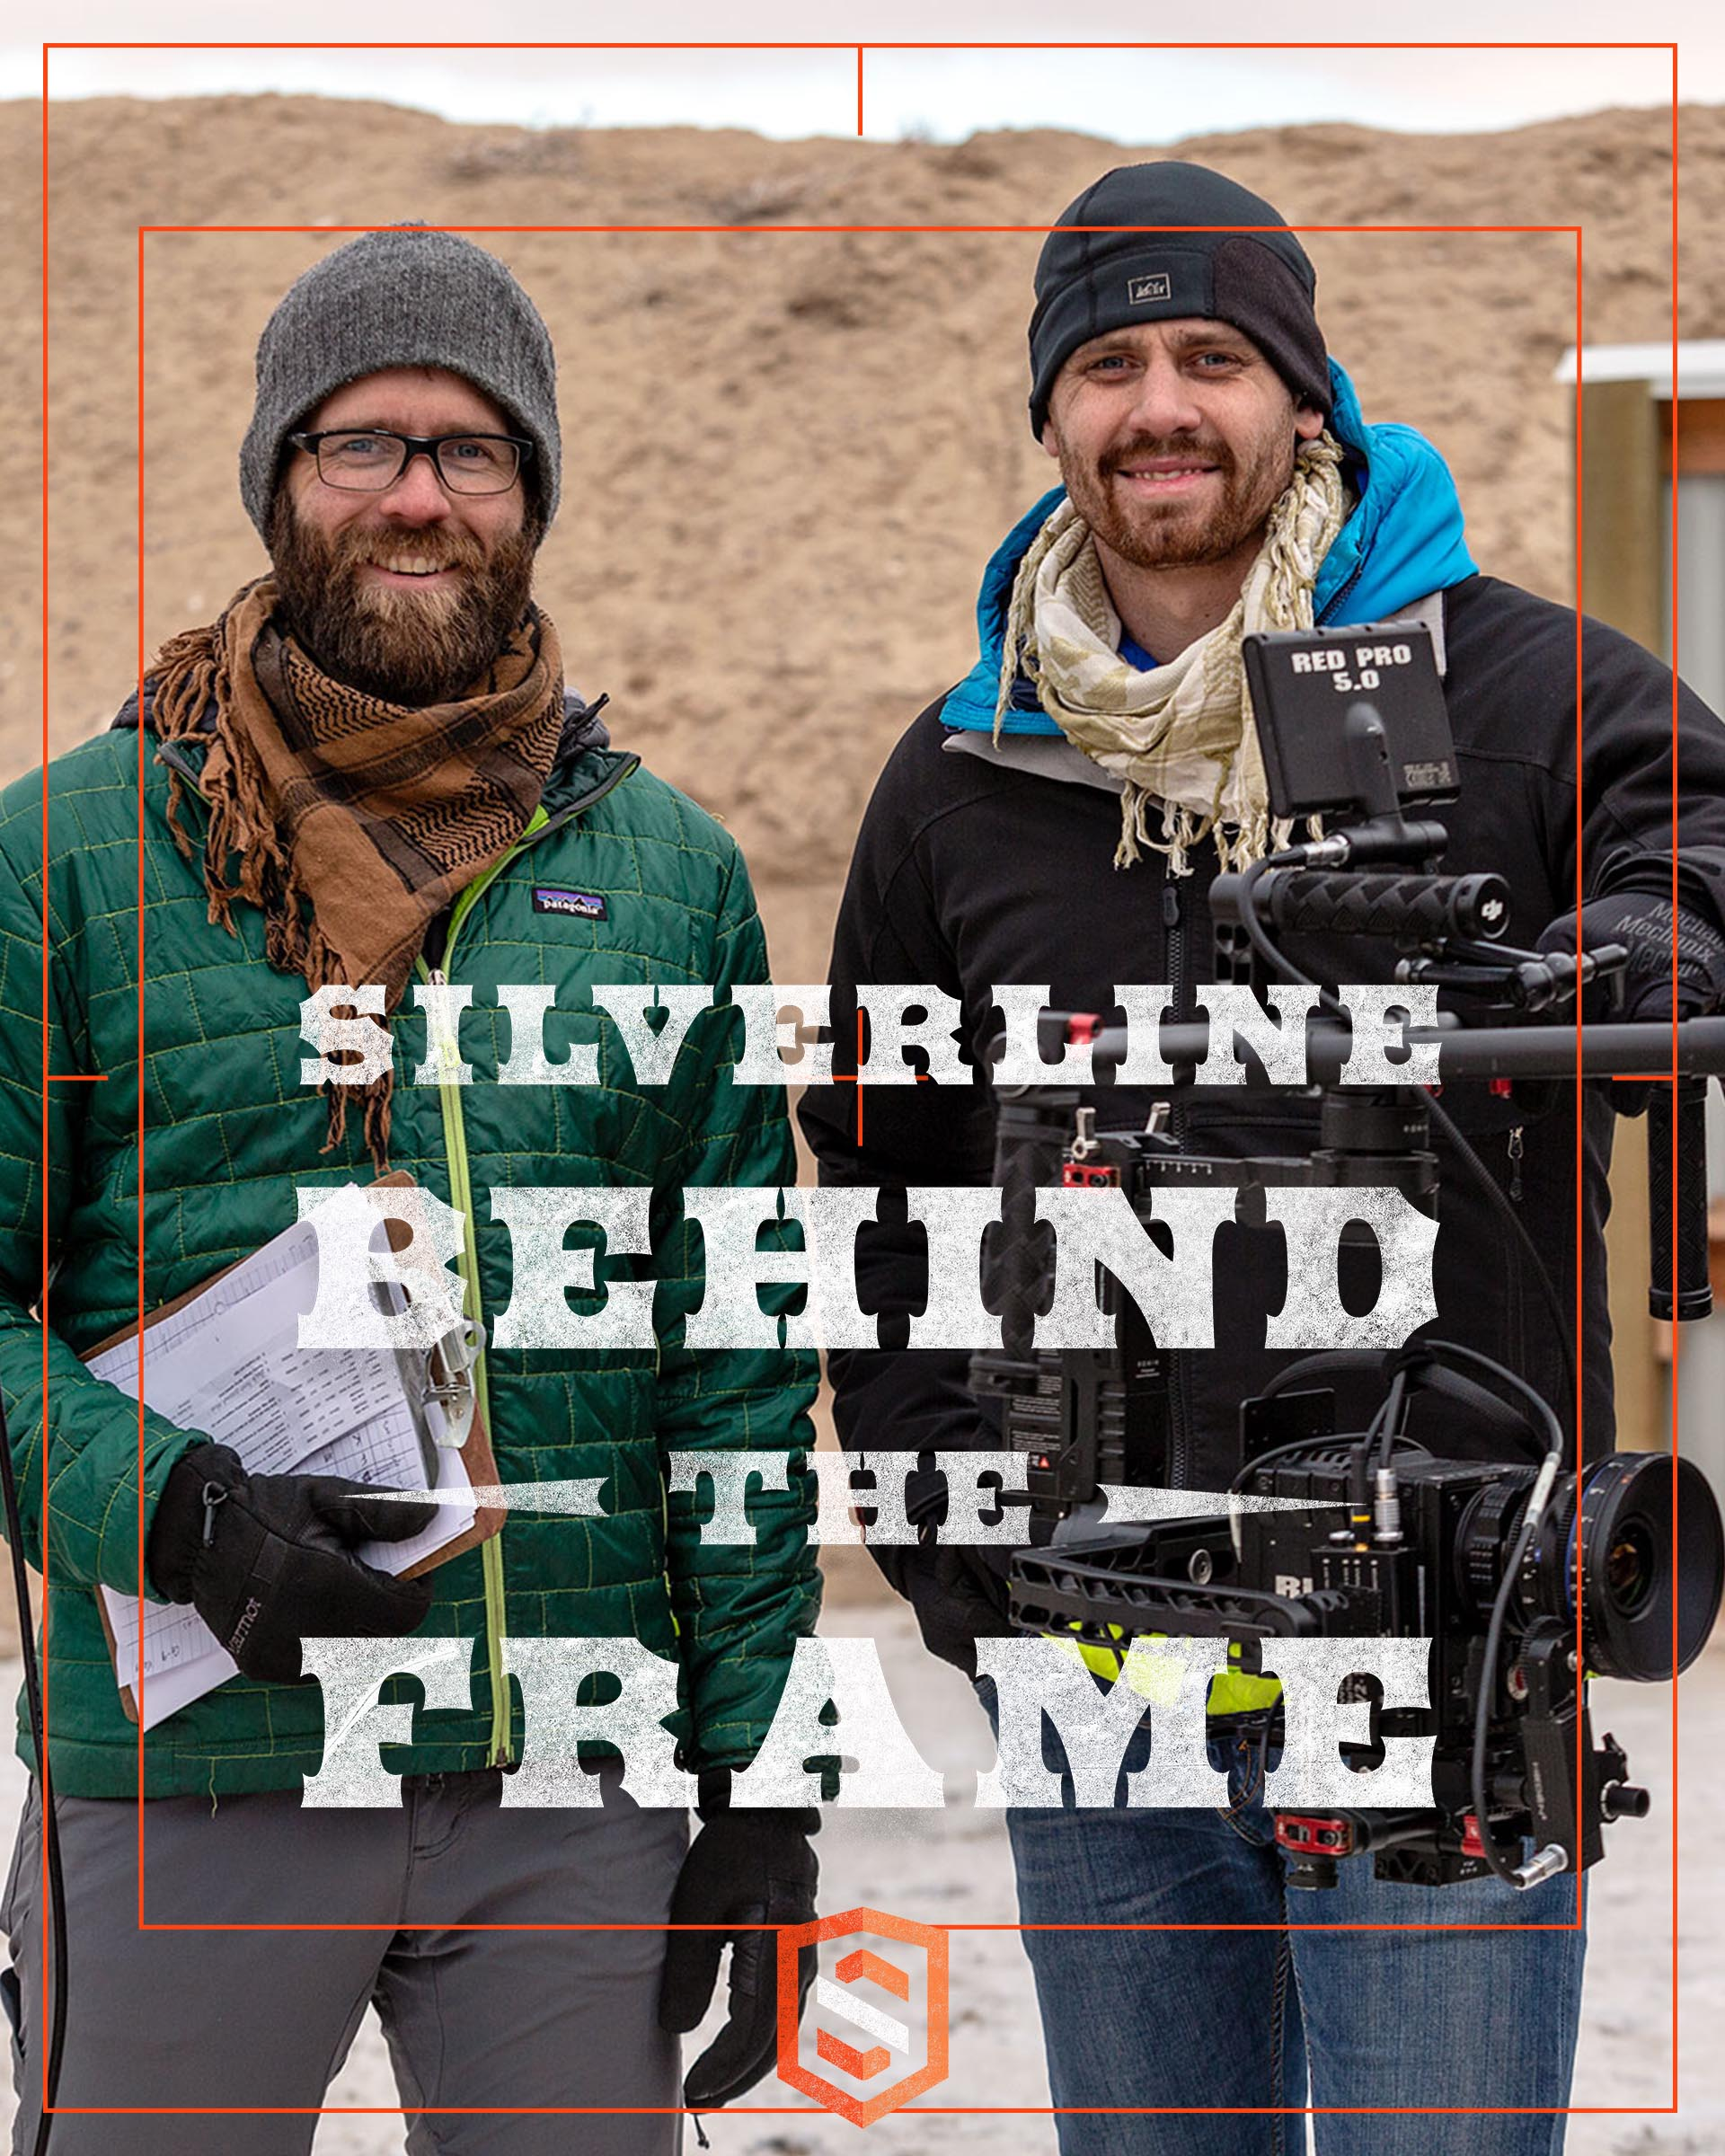 Welcome to Silverline Behind the Frame - As outdoor enthusiasts, and entrepreneurs, we have been blessed to travel the world, and interact with amazing people along the way. The purpose of this podcast is to dive in, behind the frame of the people, businesses, media and adventures over the years. We wanted to share an inside look at not only the companies and the projects we have been a part of, but also other incredible people that we have the pleasure of meeting, working with, learning from, across the variety of industries we work in.